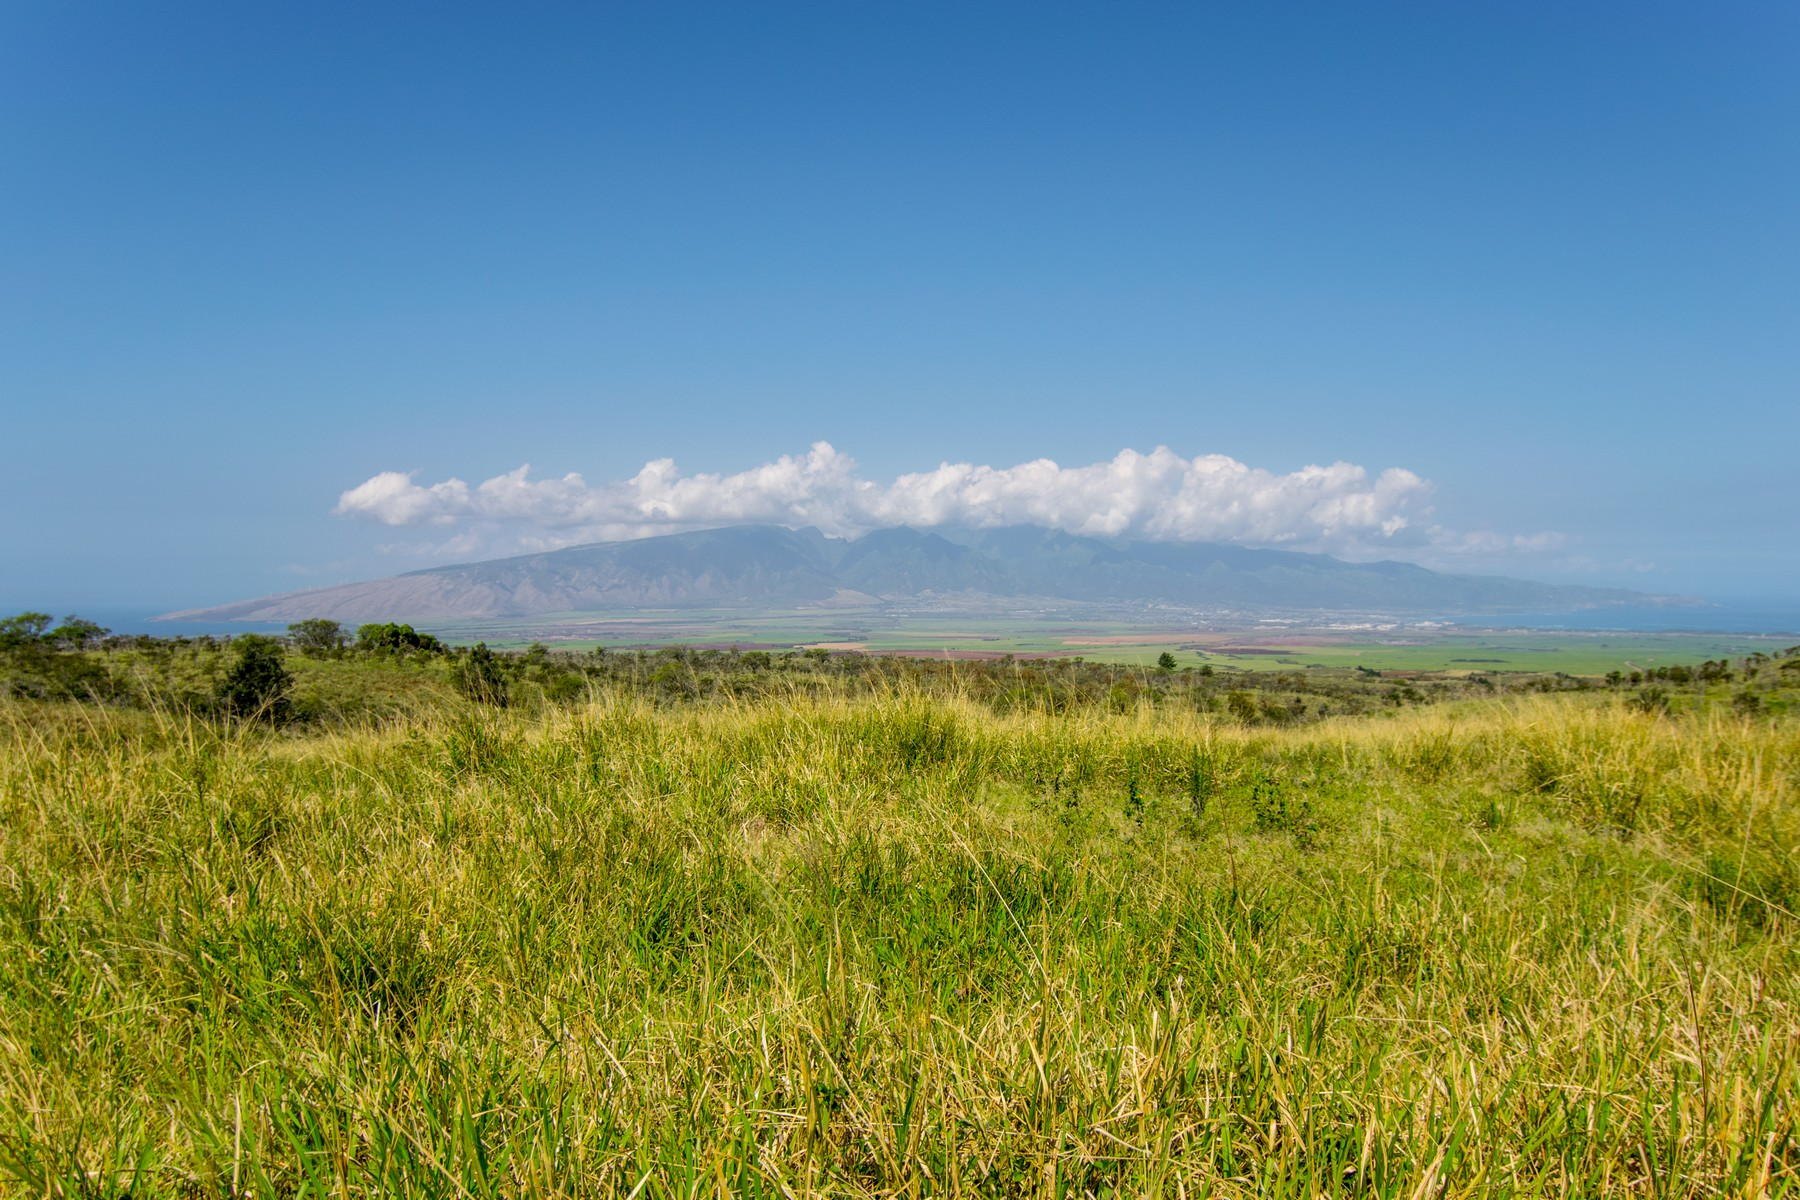 Terreno por un Venta en Magnificent 464 Acre Maui Ranch Property 0 Kula Highway Kula, Hawaii, 96790 Estados Unidos